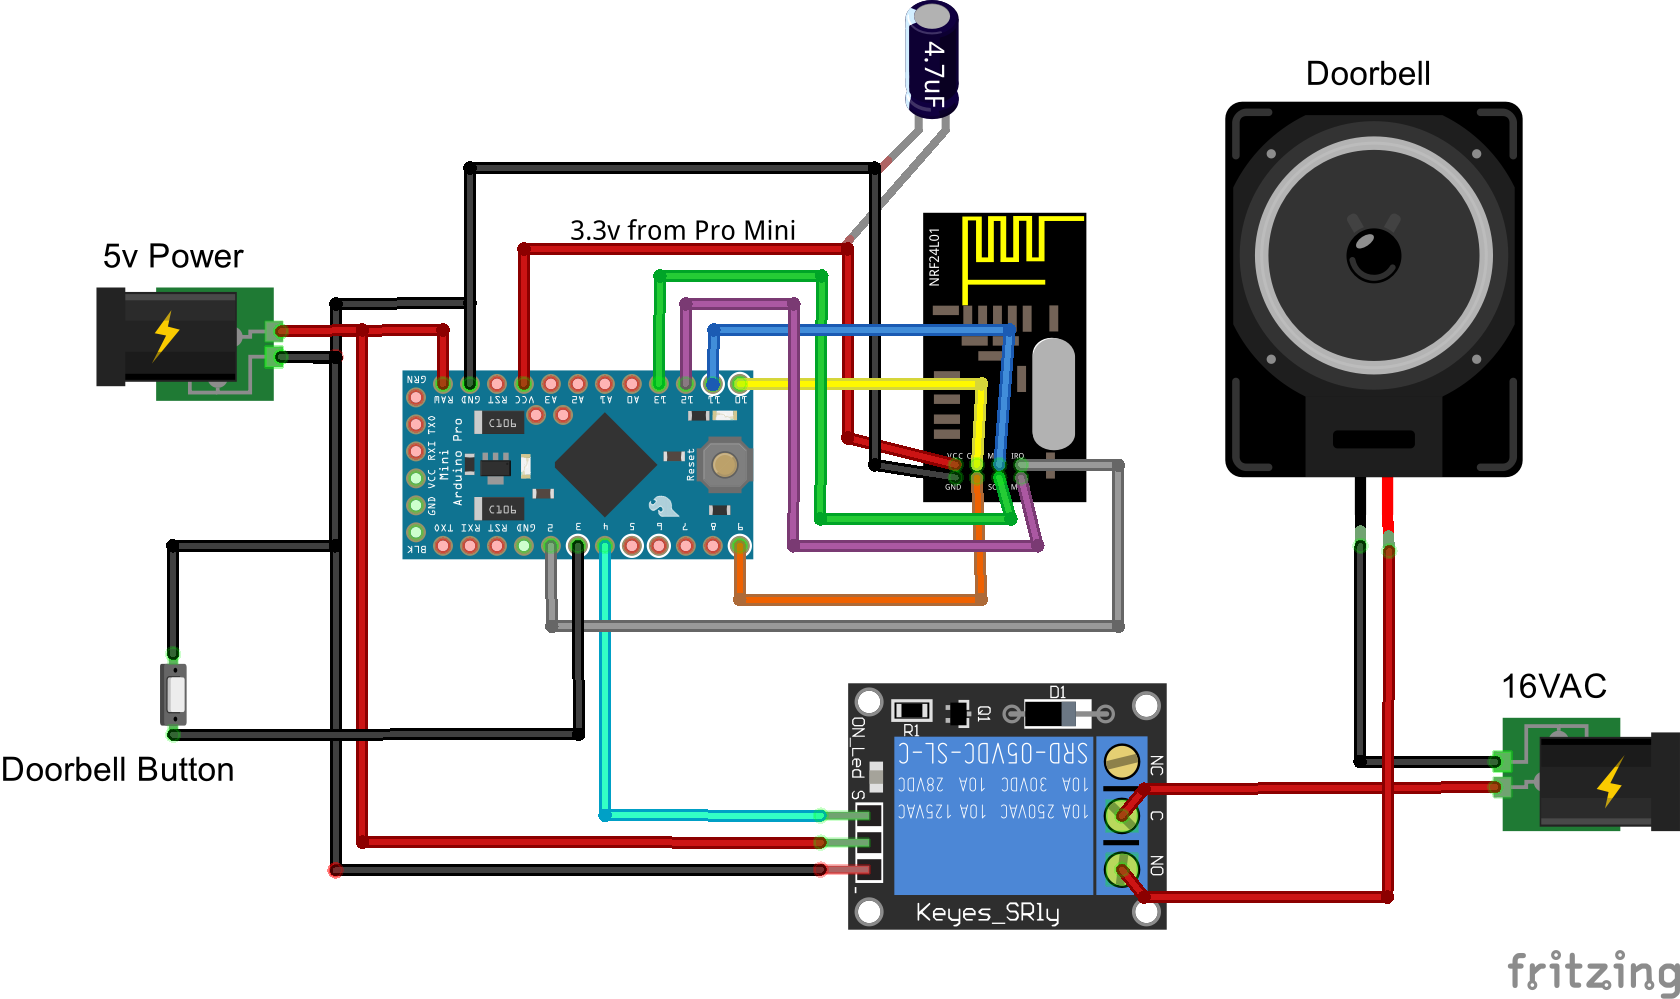 How To Doorbell Automation Hack Mysensors Forum Board Doesn39t Have Any Relays Anyways But With No Circuit Diagram